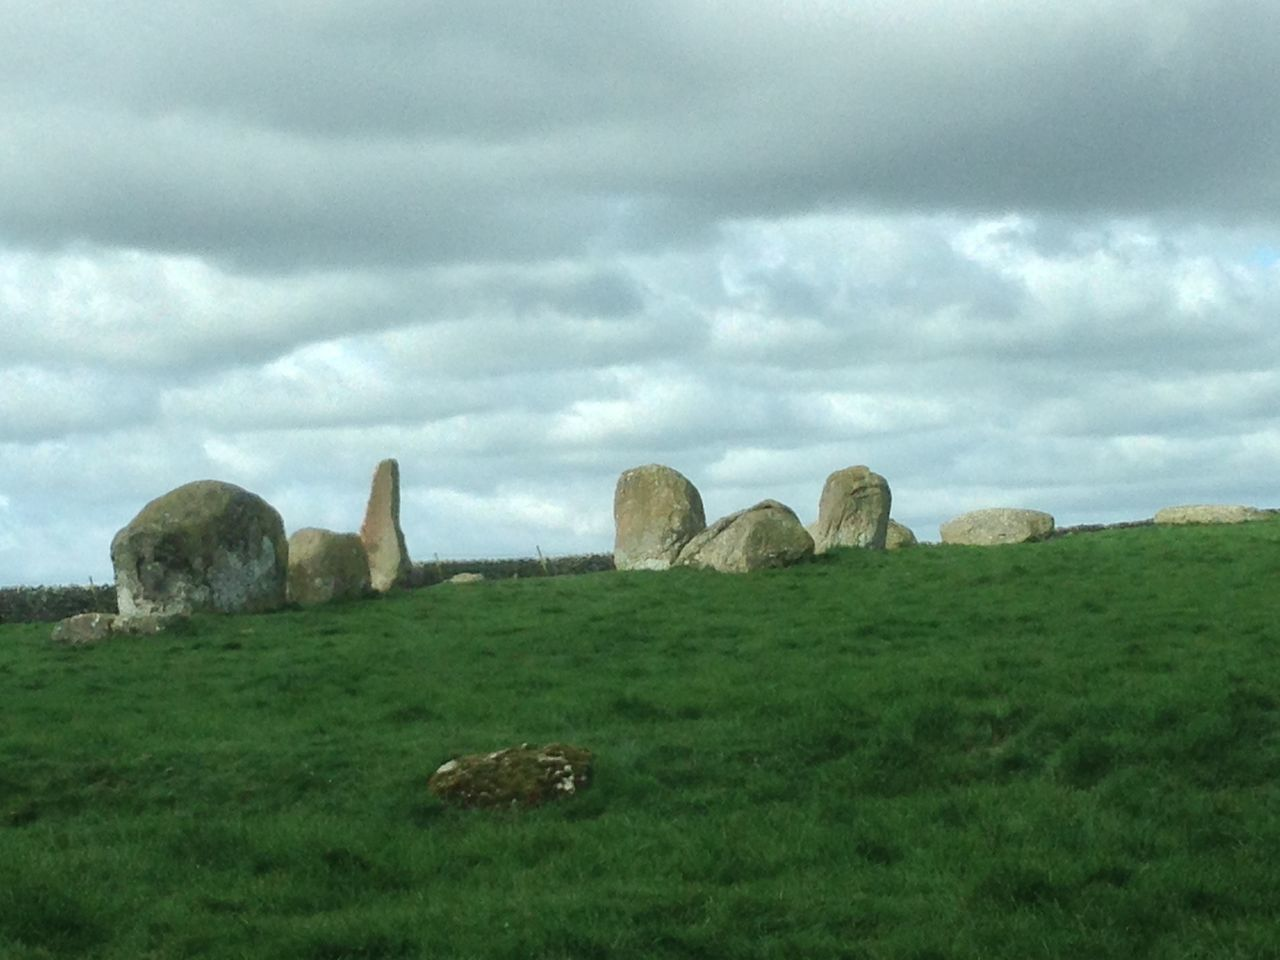 Ancient Ancient Civilization Grass Outdoors Rock Standing Standing Stones Stone Stone Circle